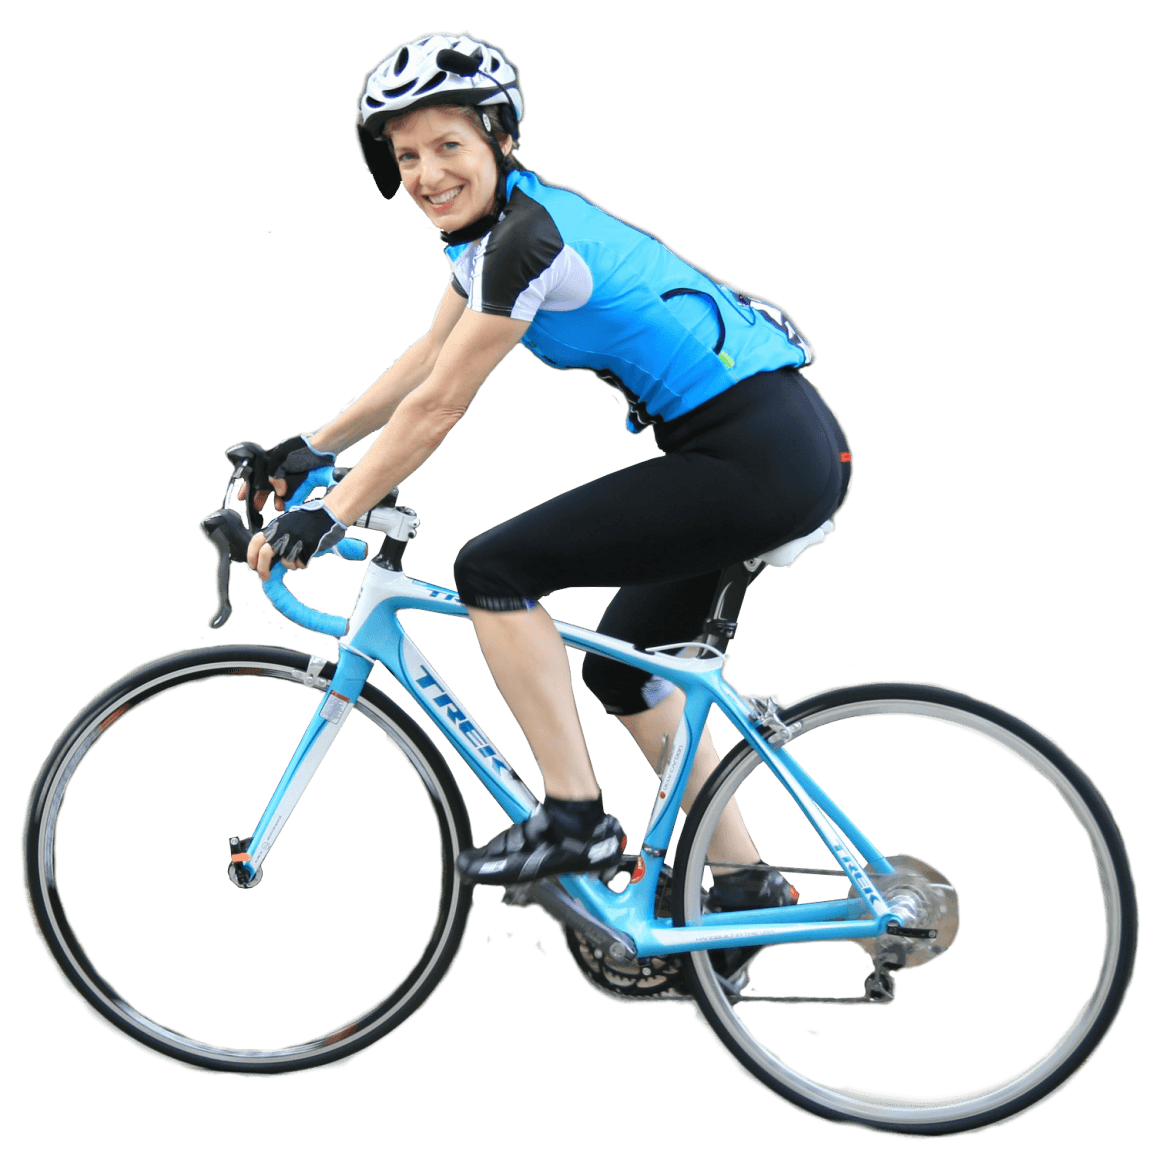 Woman On Bicycle Png Image